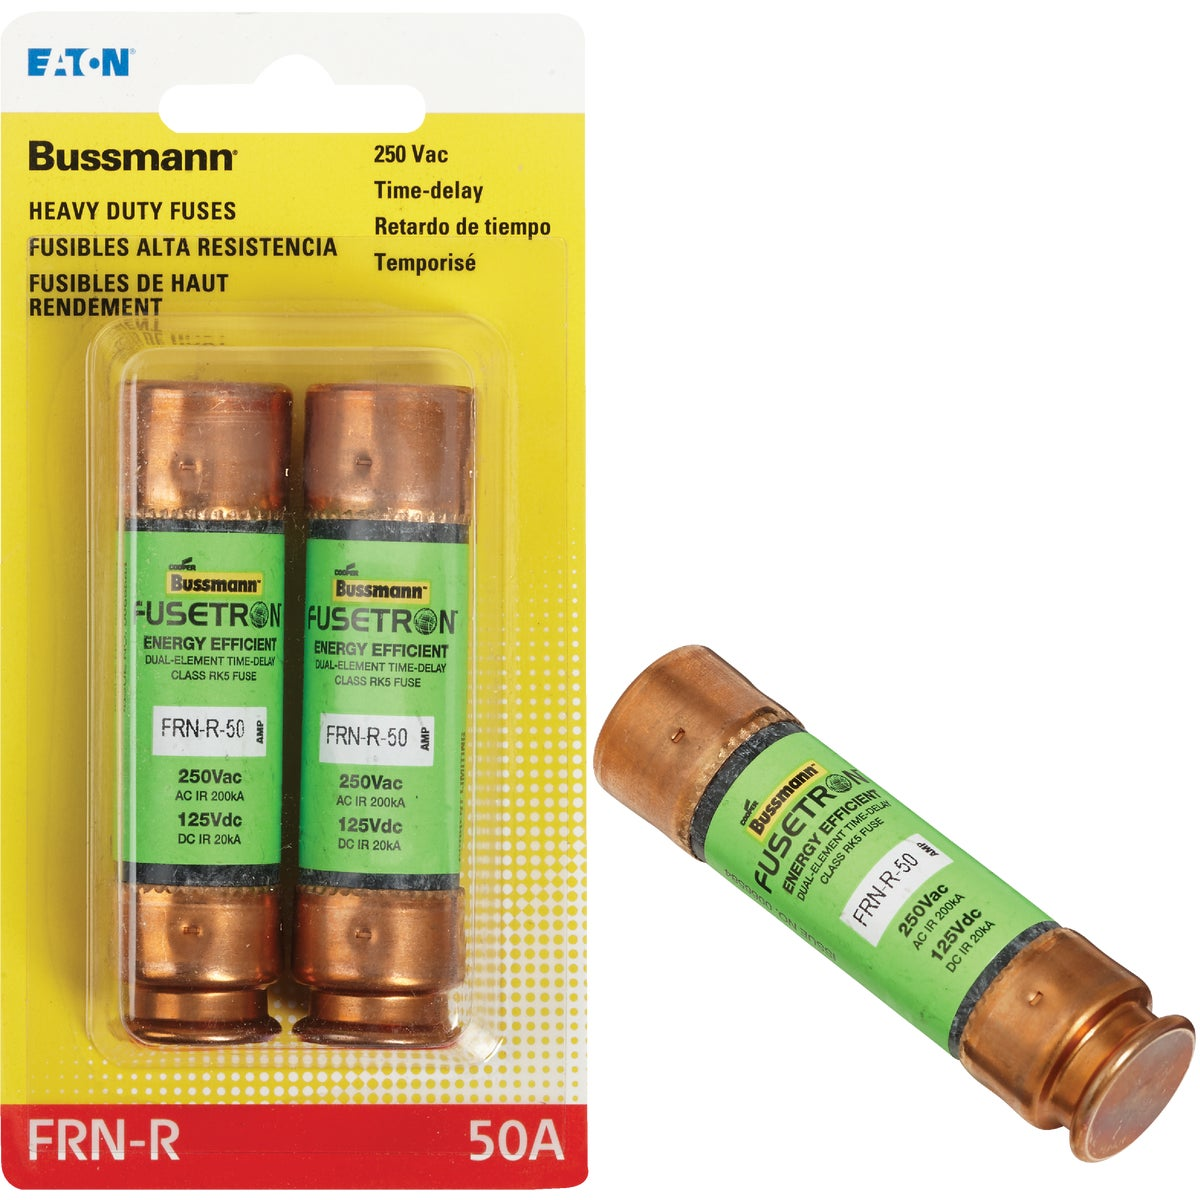 50A CARTRIDGE FUSE - BP/FRN-R-50 by Bussmann Cooper